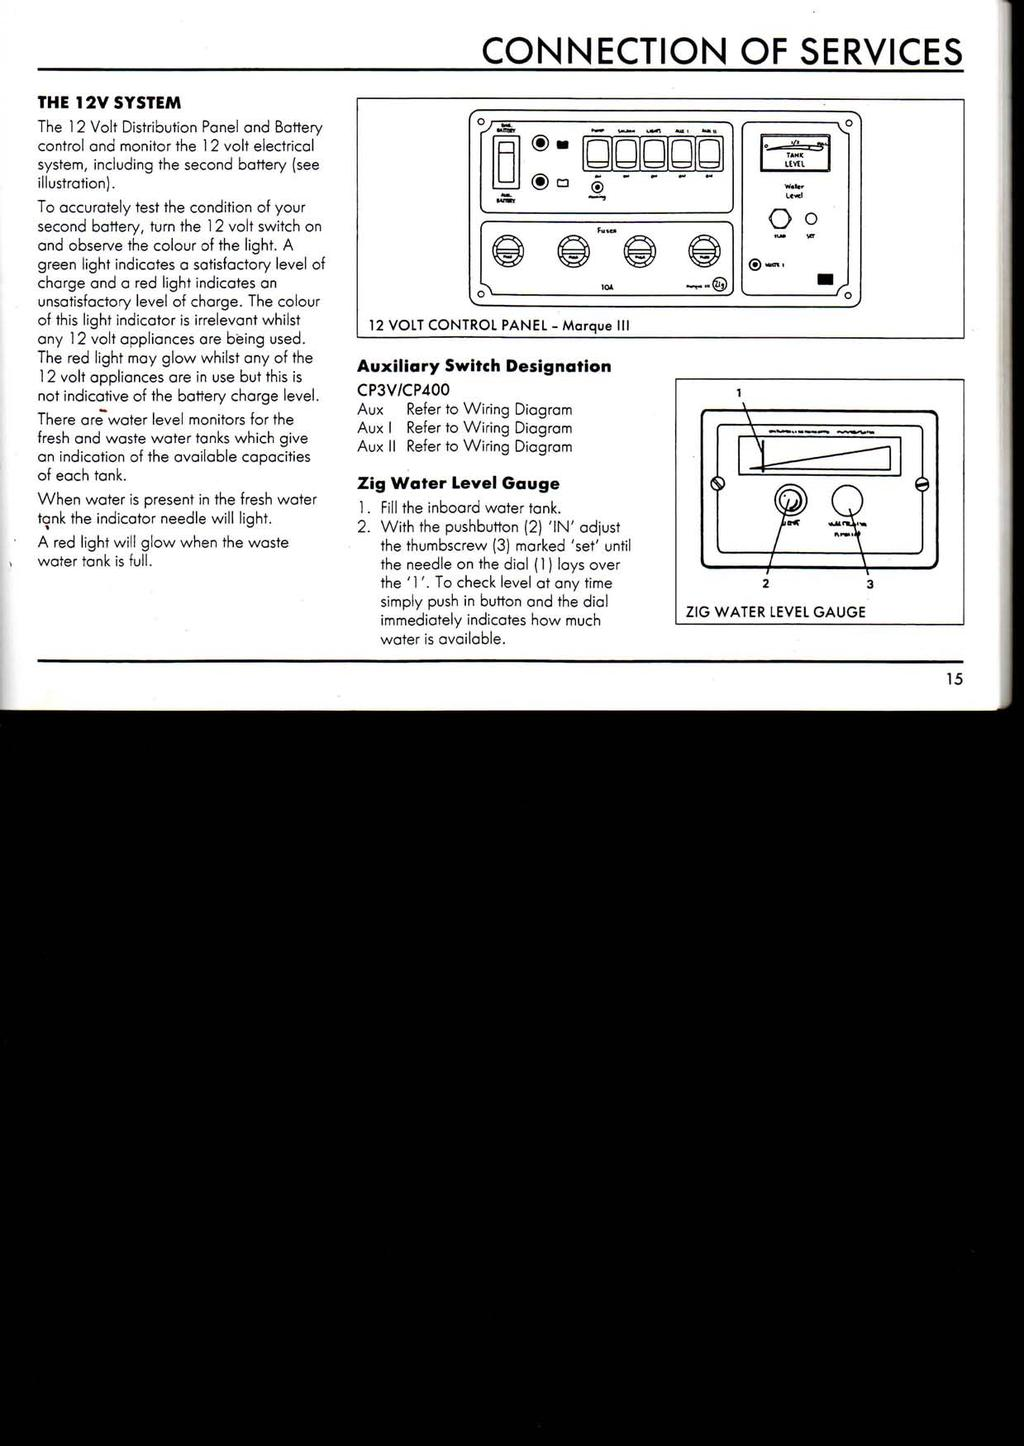 Motorhome Owners Handbook A Useful Website For And Caravan Zig Wiring Diagram Connection Of Services The 12v System 1 2 Volt Distribution Panel Battery Control